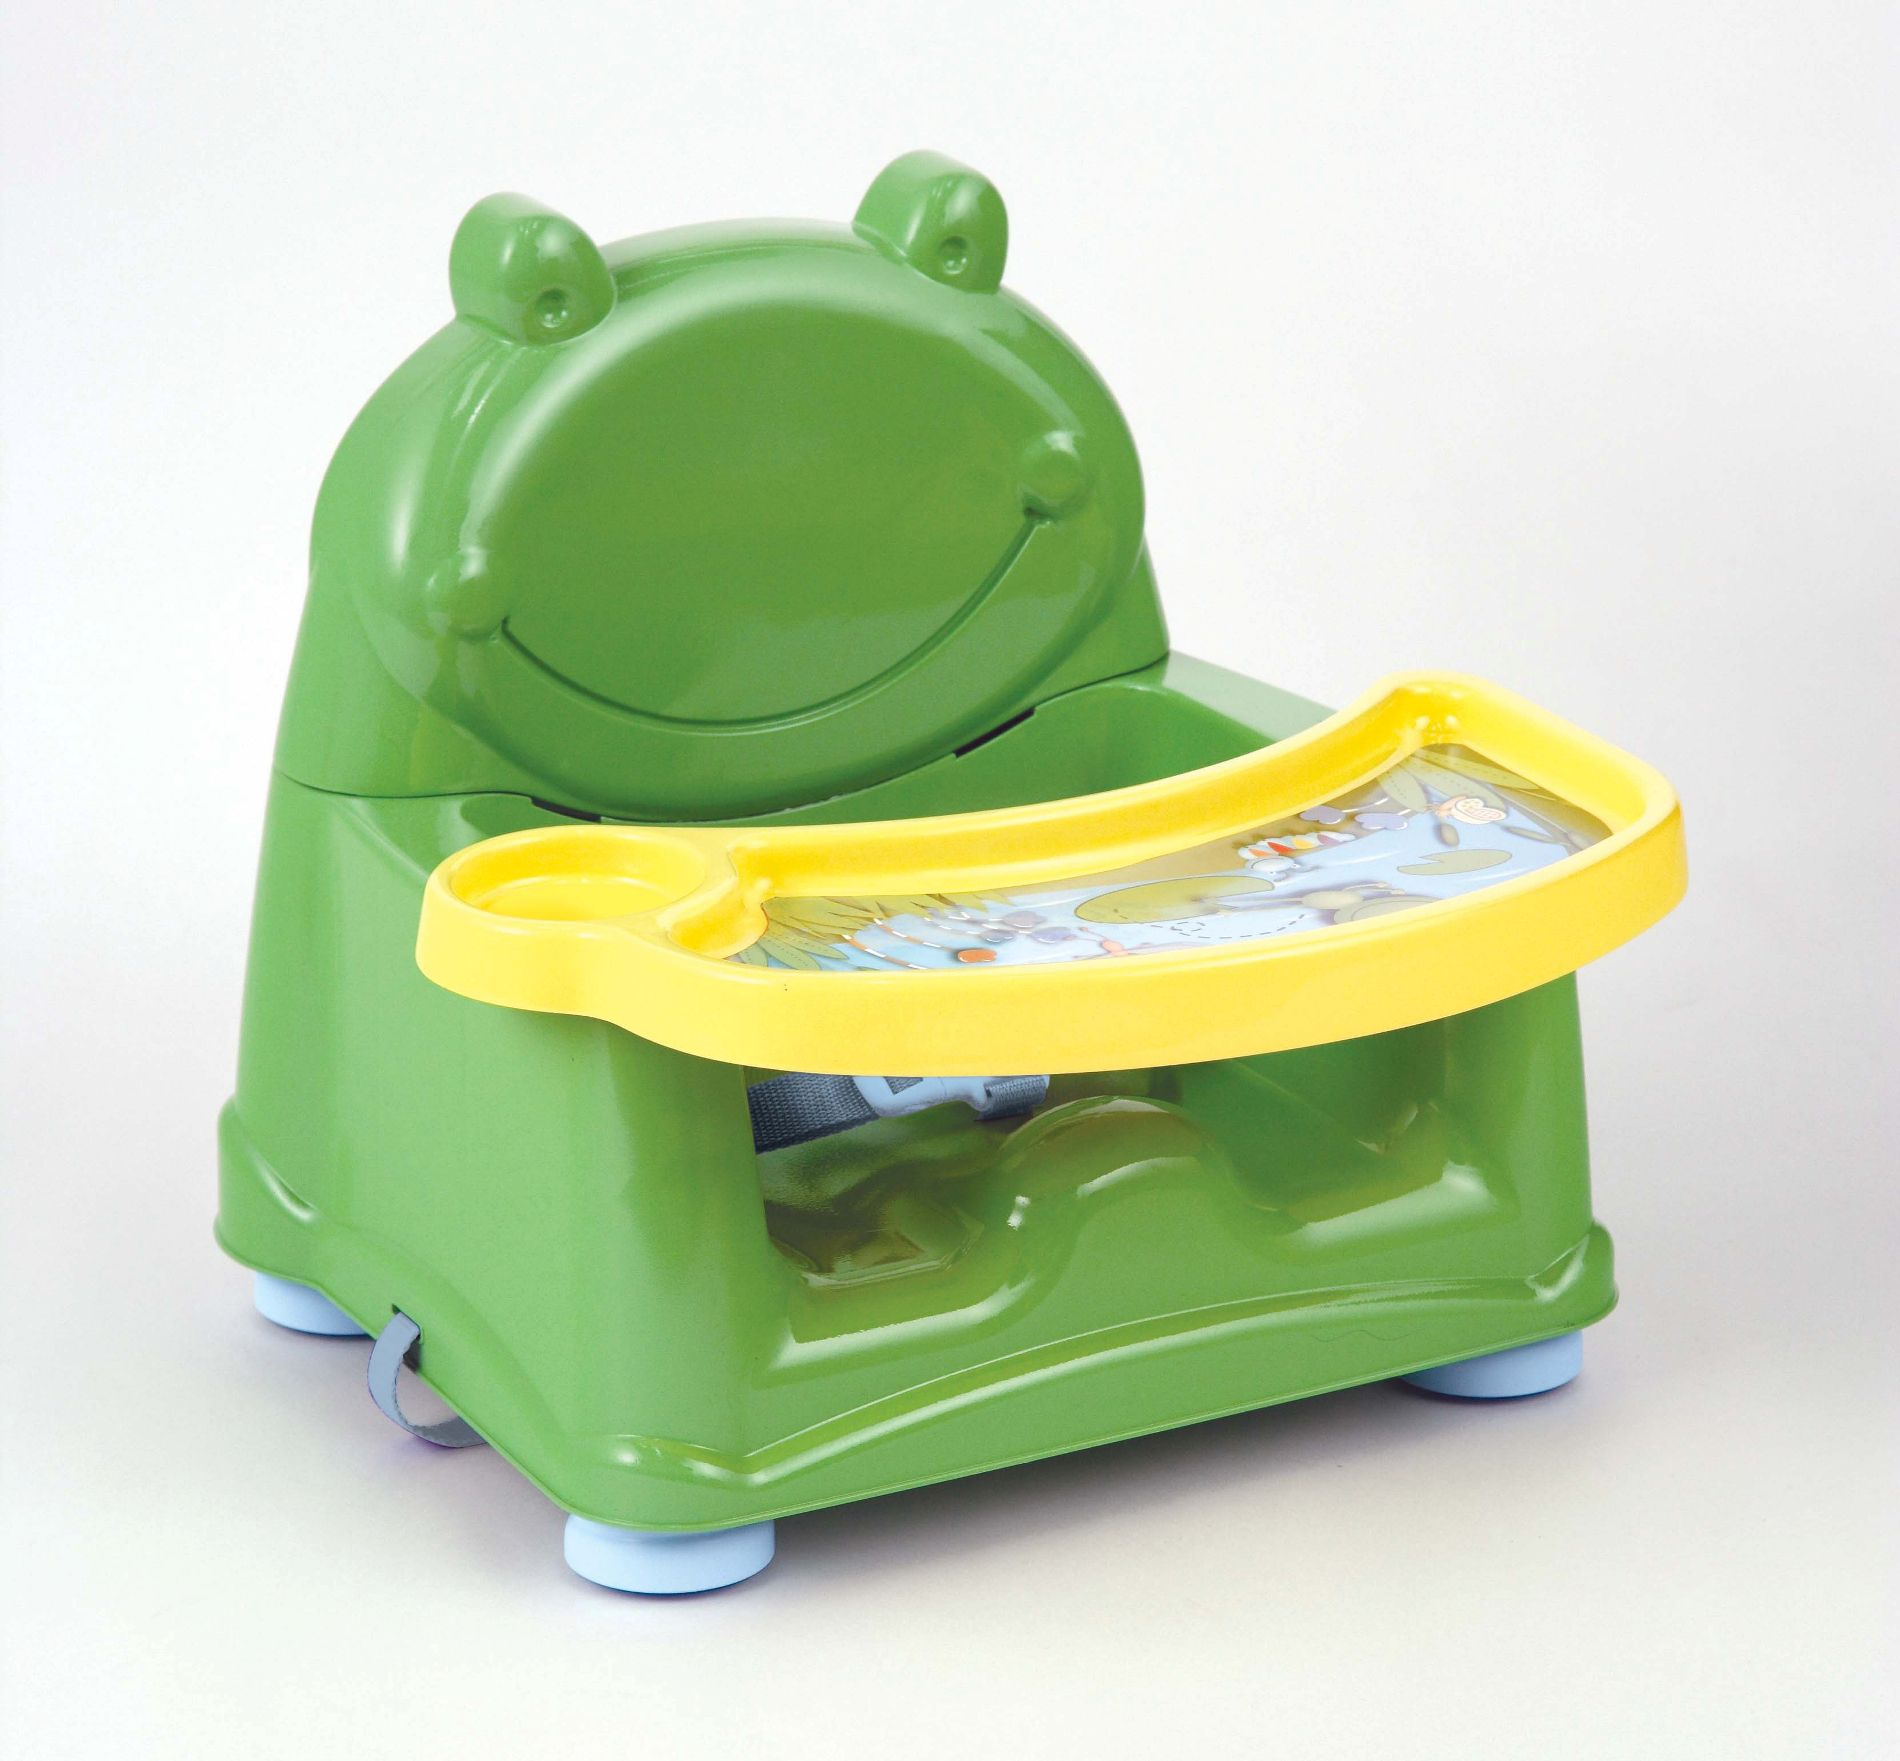 booster seat or high chair which is better head covers safety 1st swing tray baby feeding